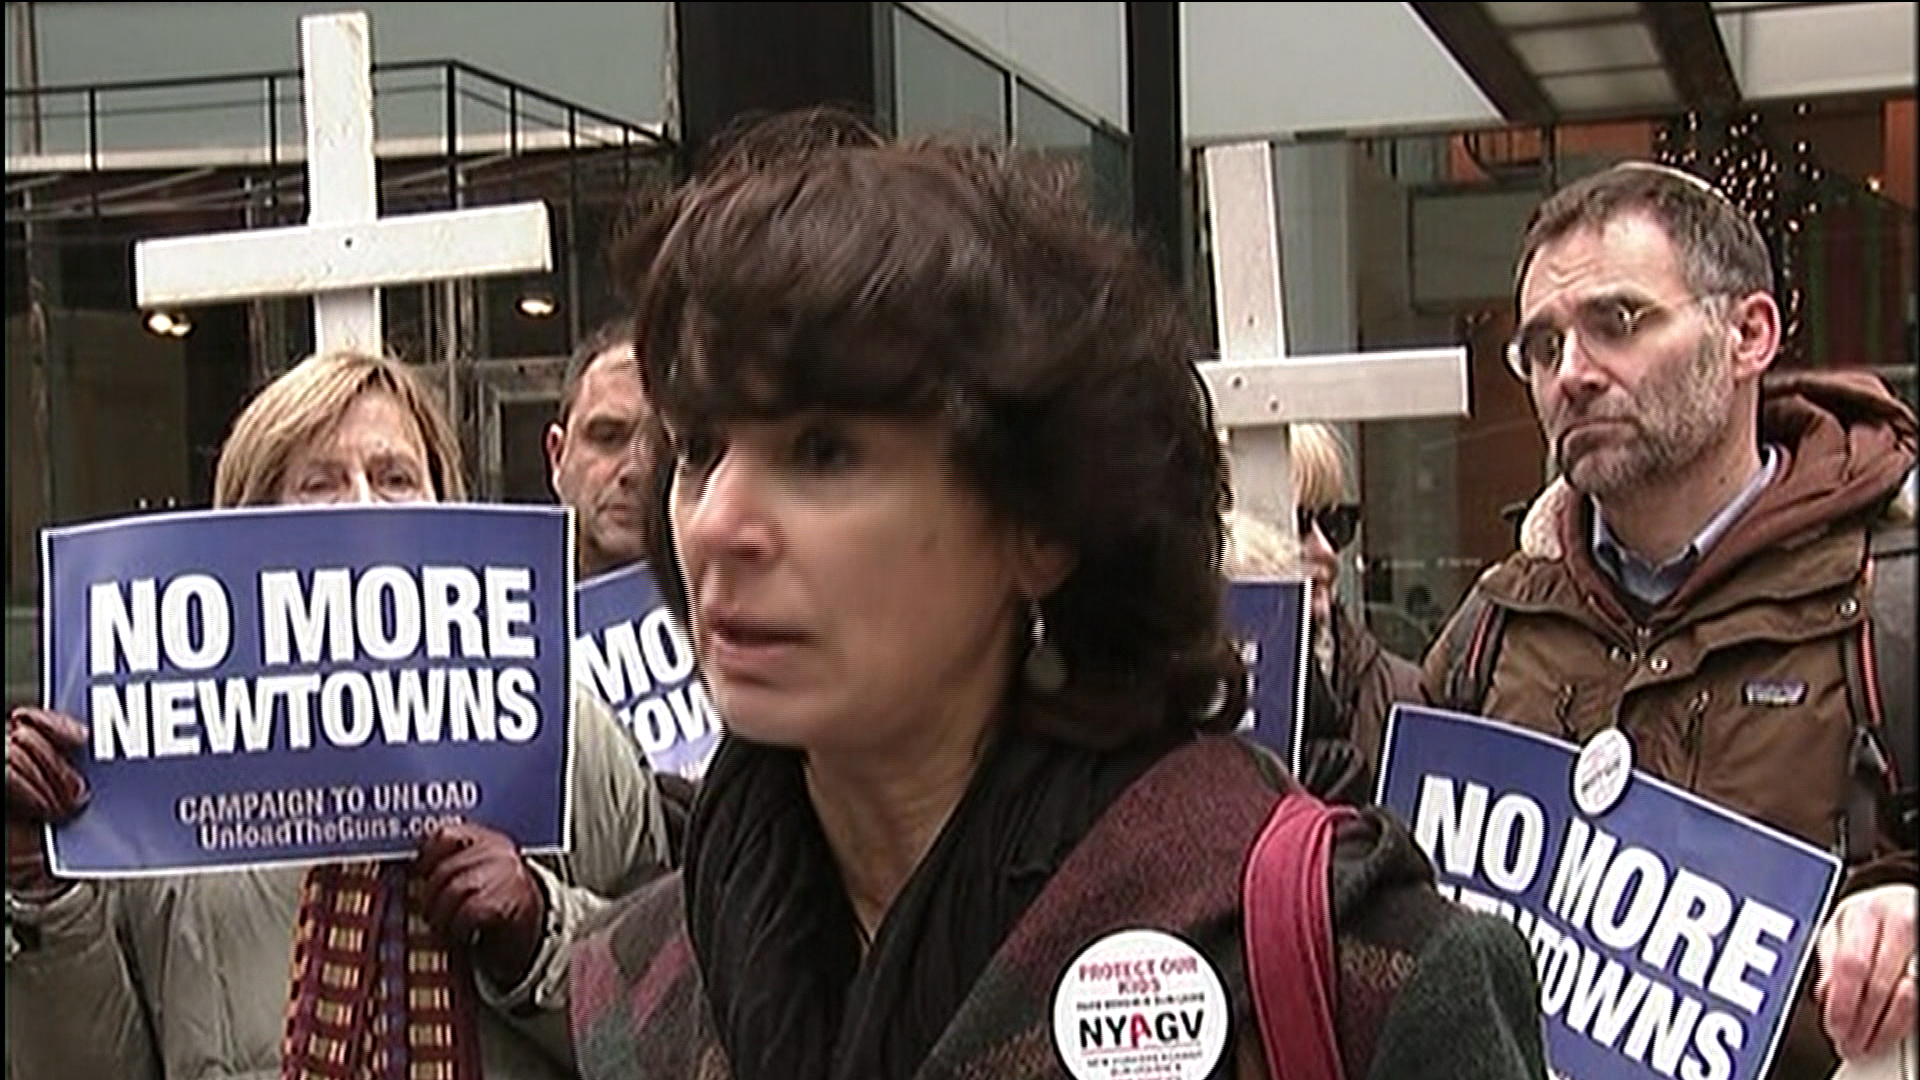 Collective action one year after Newtown